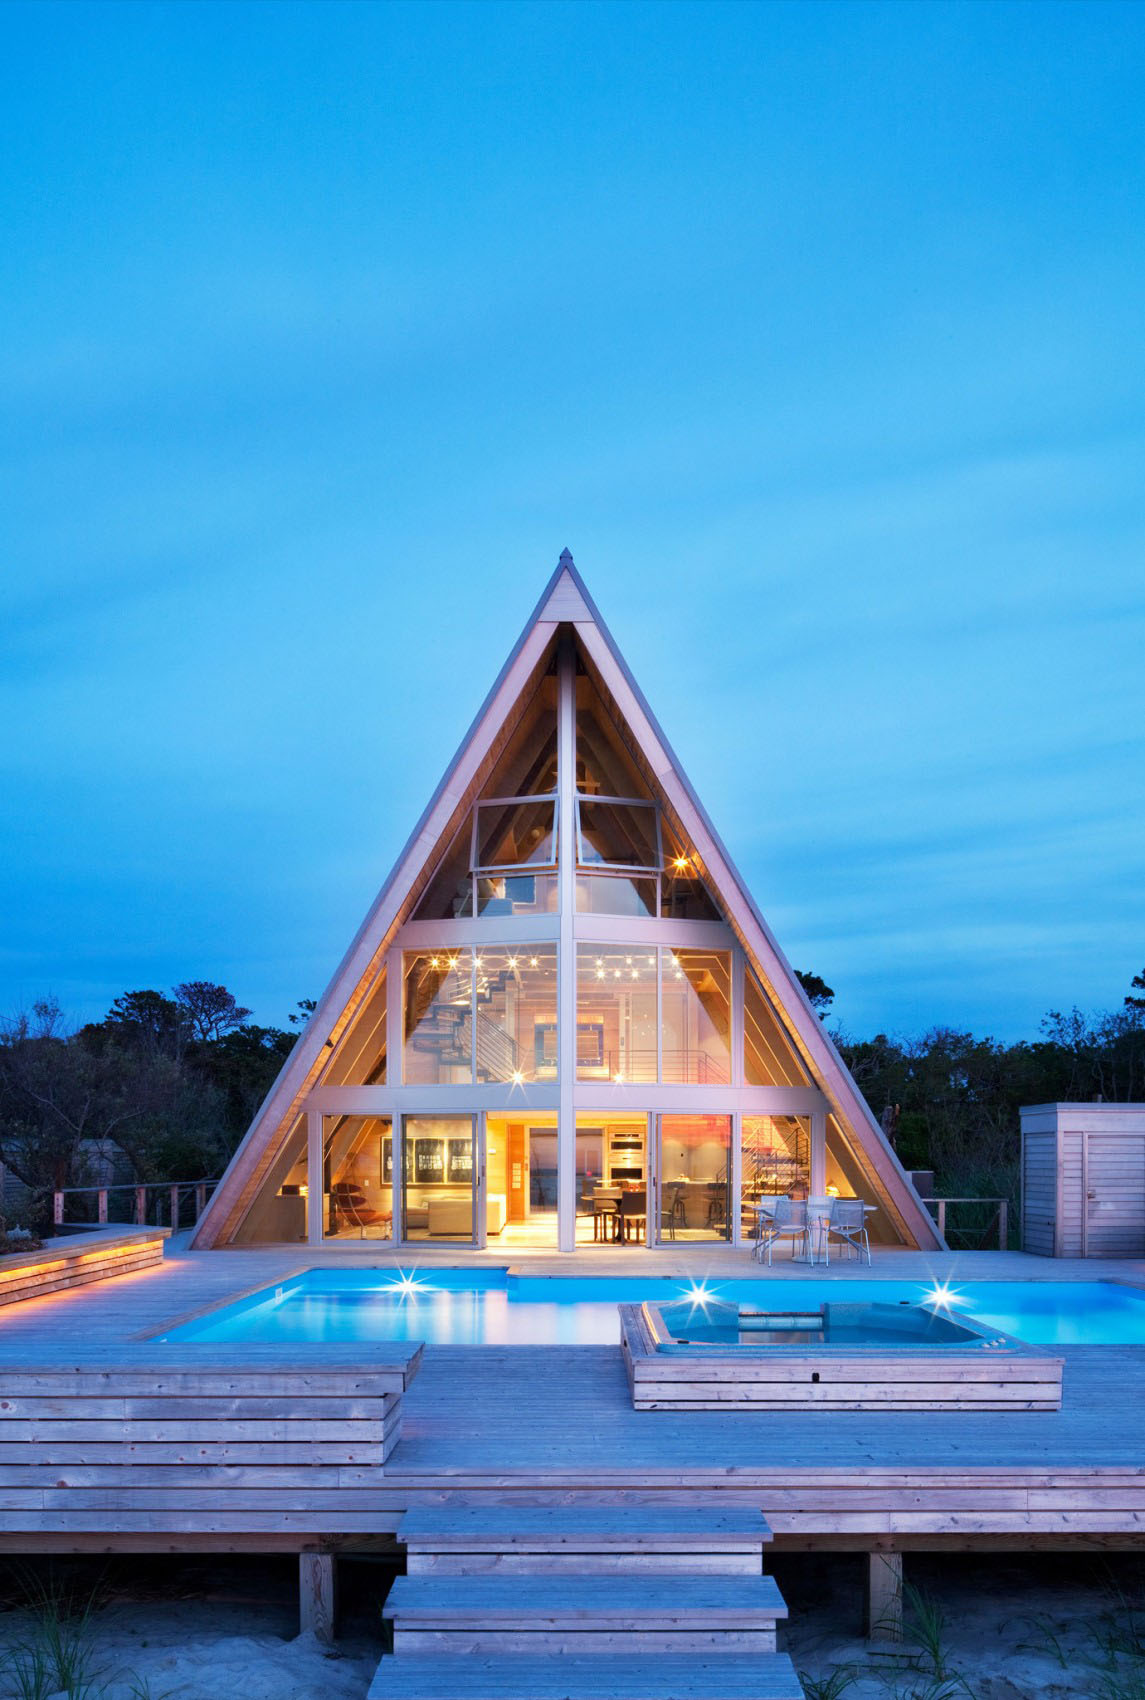 Newly redesigned A-Frame House with Swimming Pool